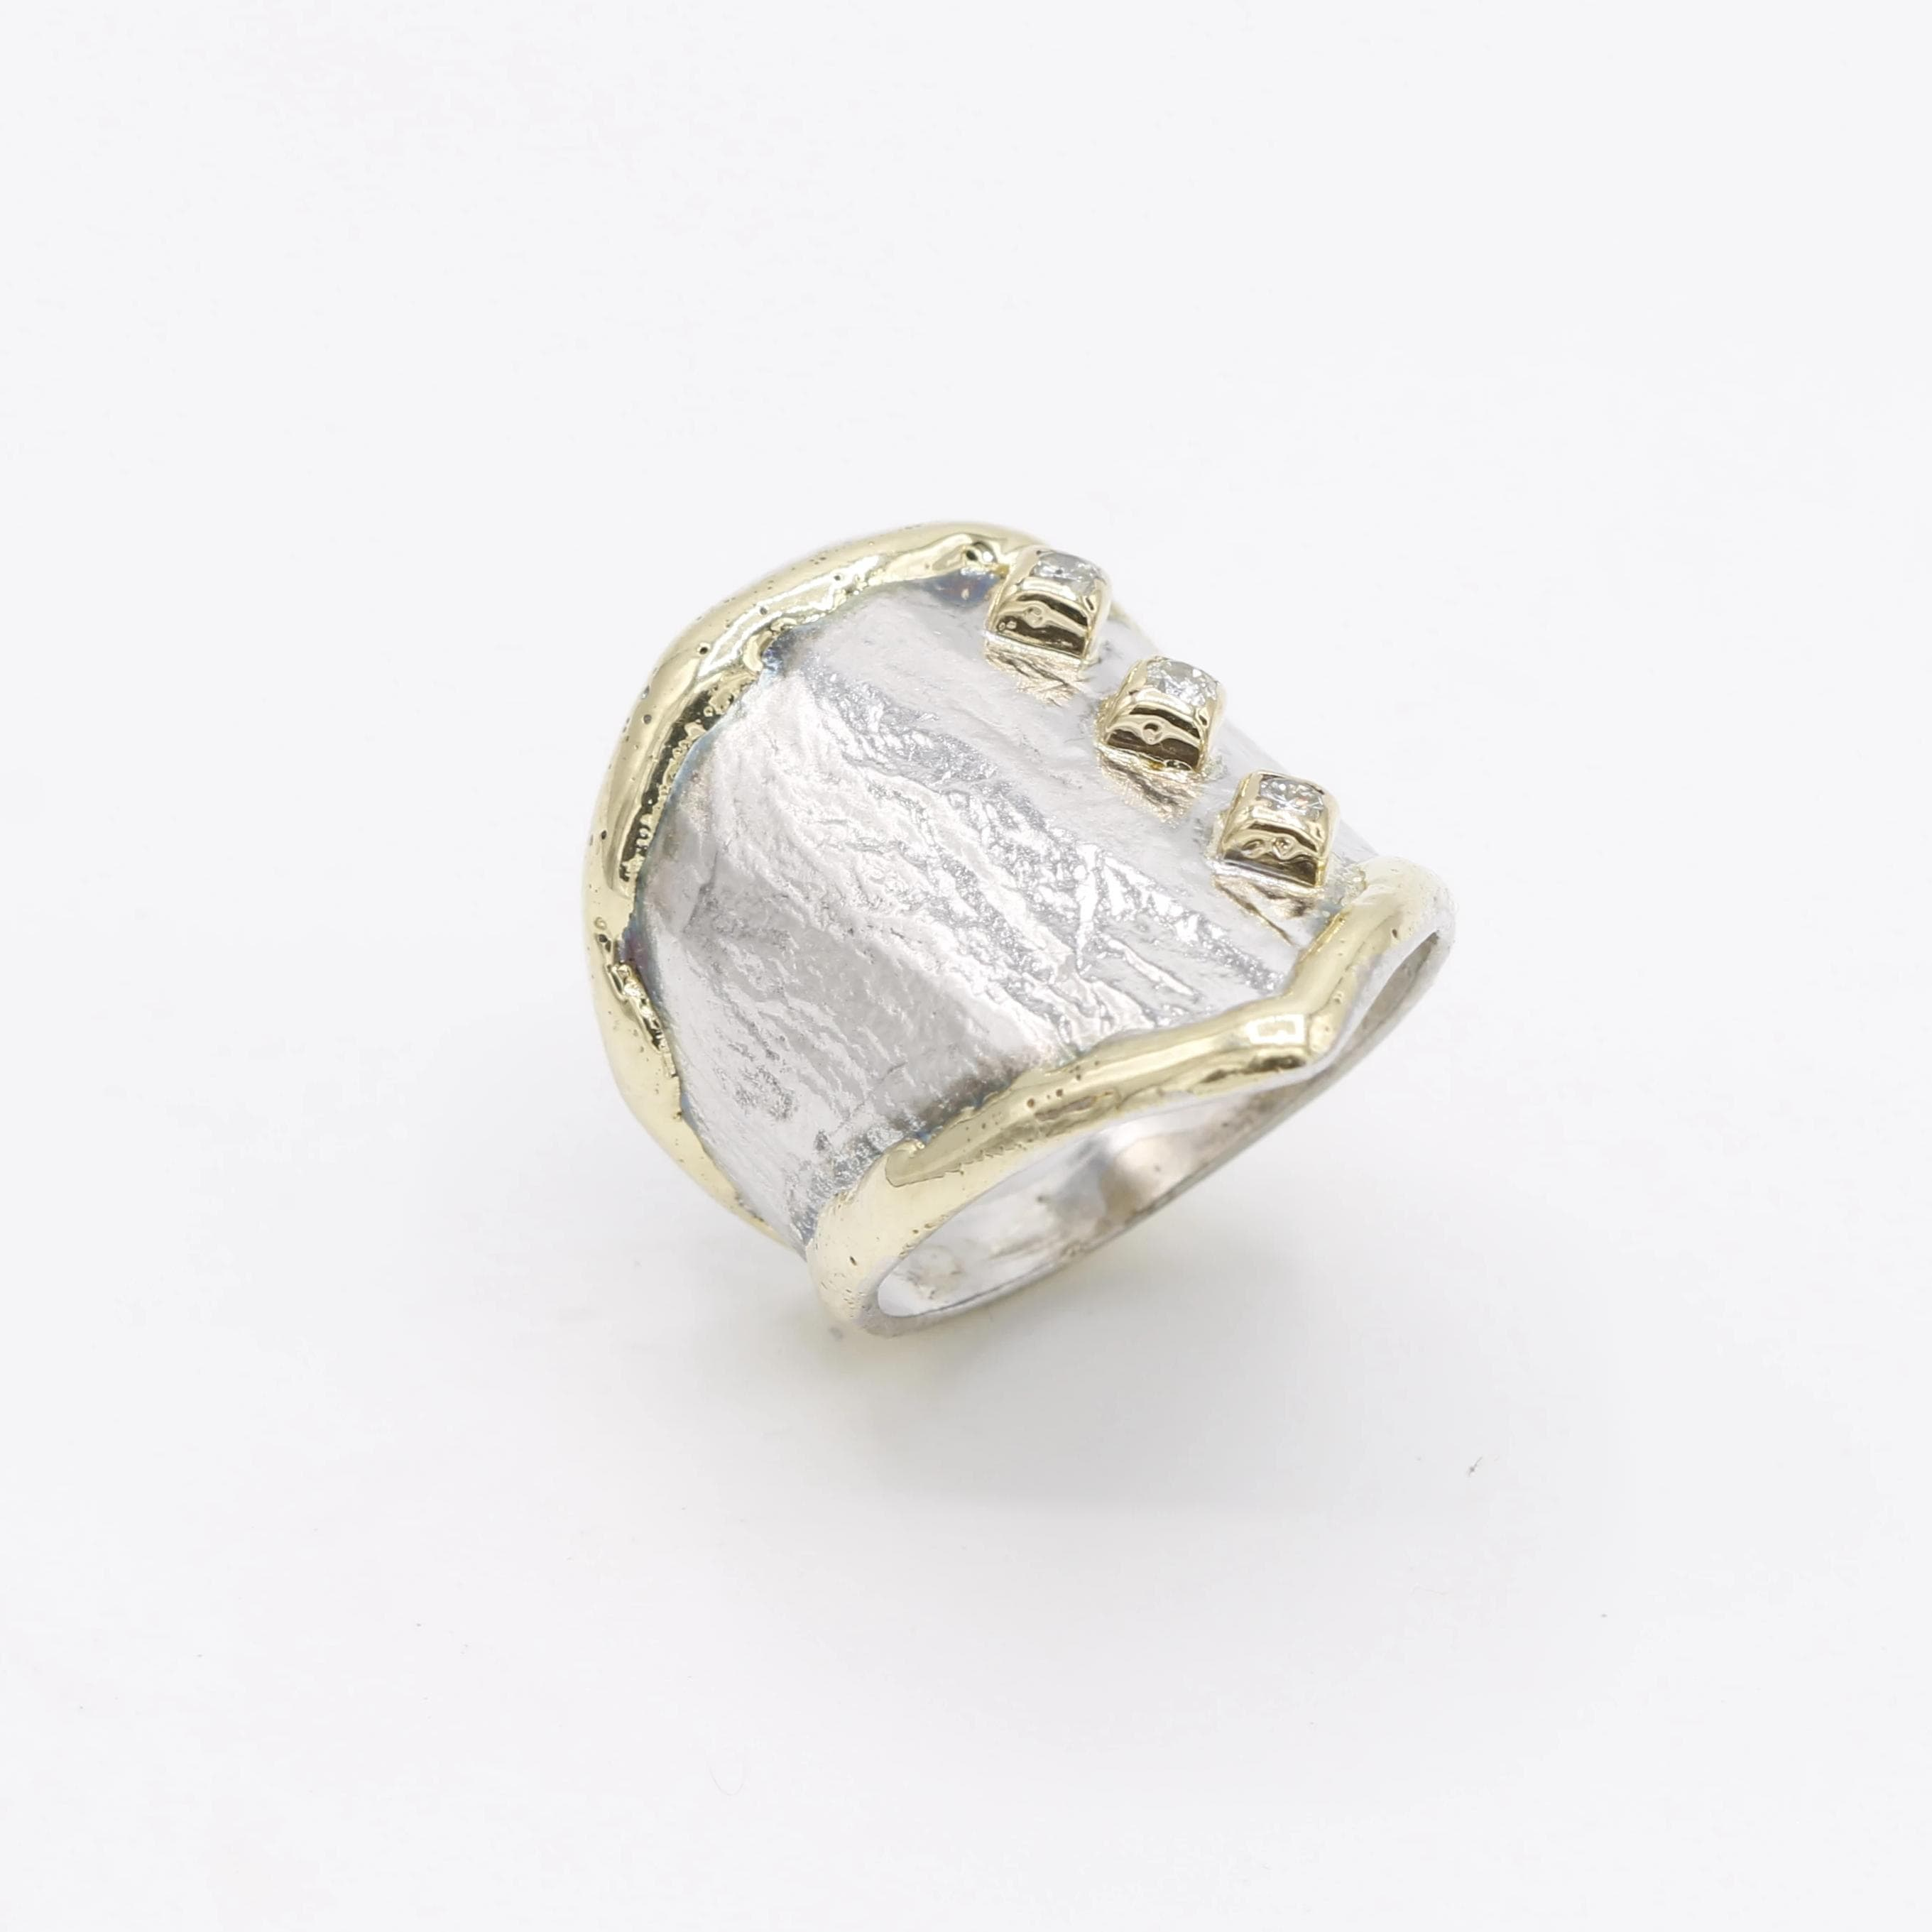 14K Gold & Crystalline Silver Diamond Ring - 30592-Fusion Designs-Renee Taylor Gallery